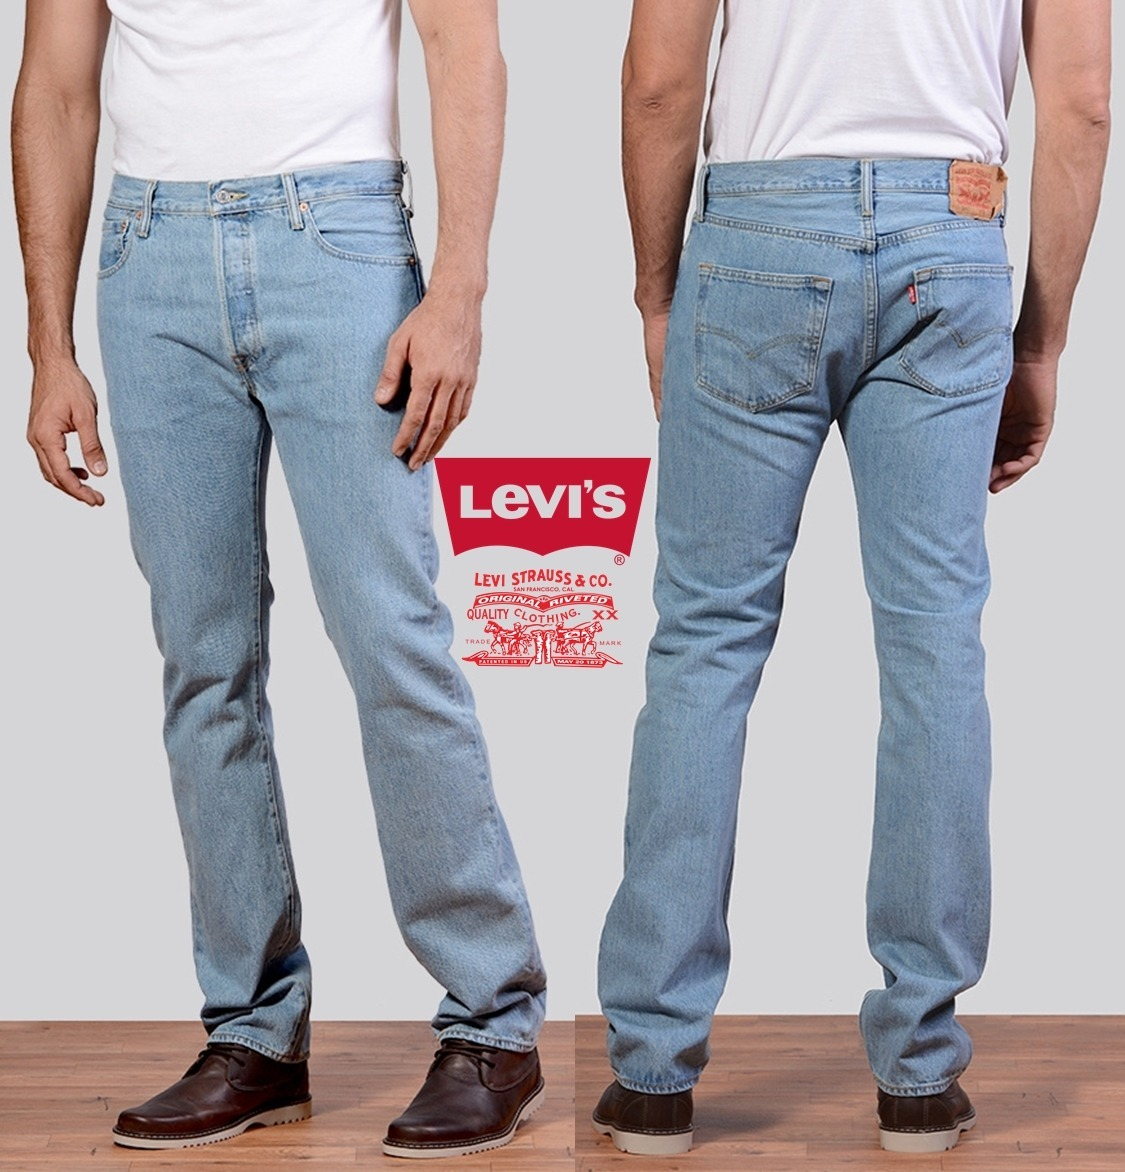 9d622849092 Jean Levis 501 Remate 100% Original Made In Colombia Diesel ...